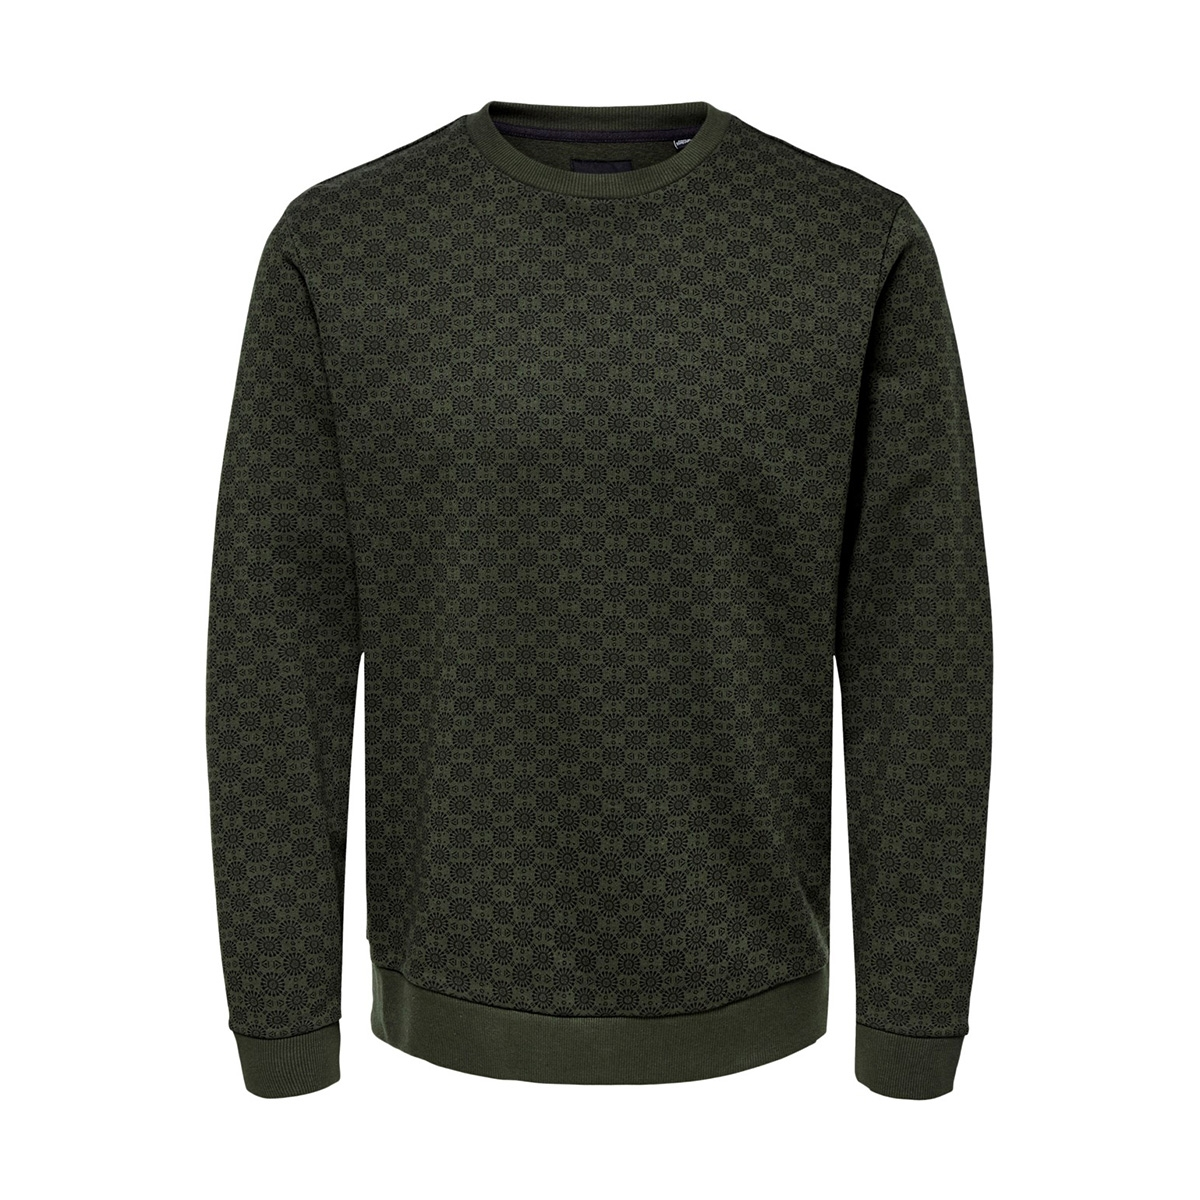 onstitson crew neck 22014773 only & sons sweater forest night